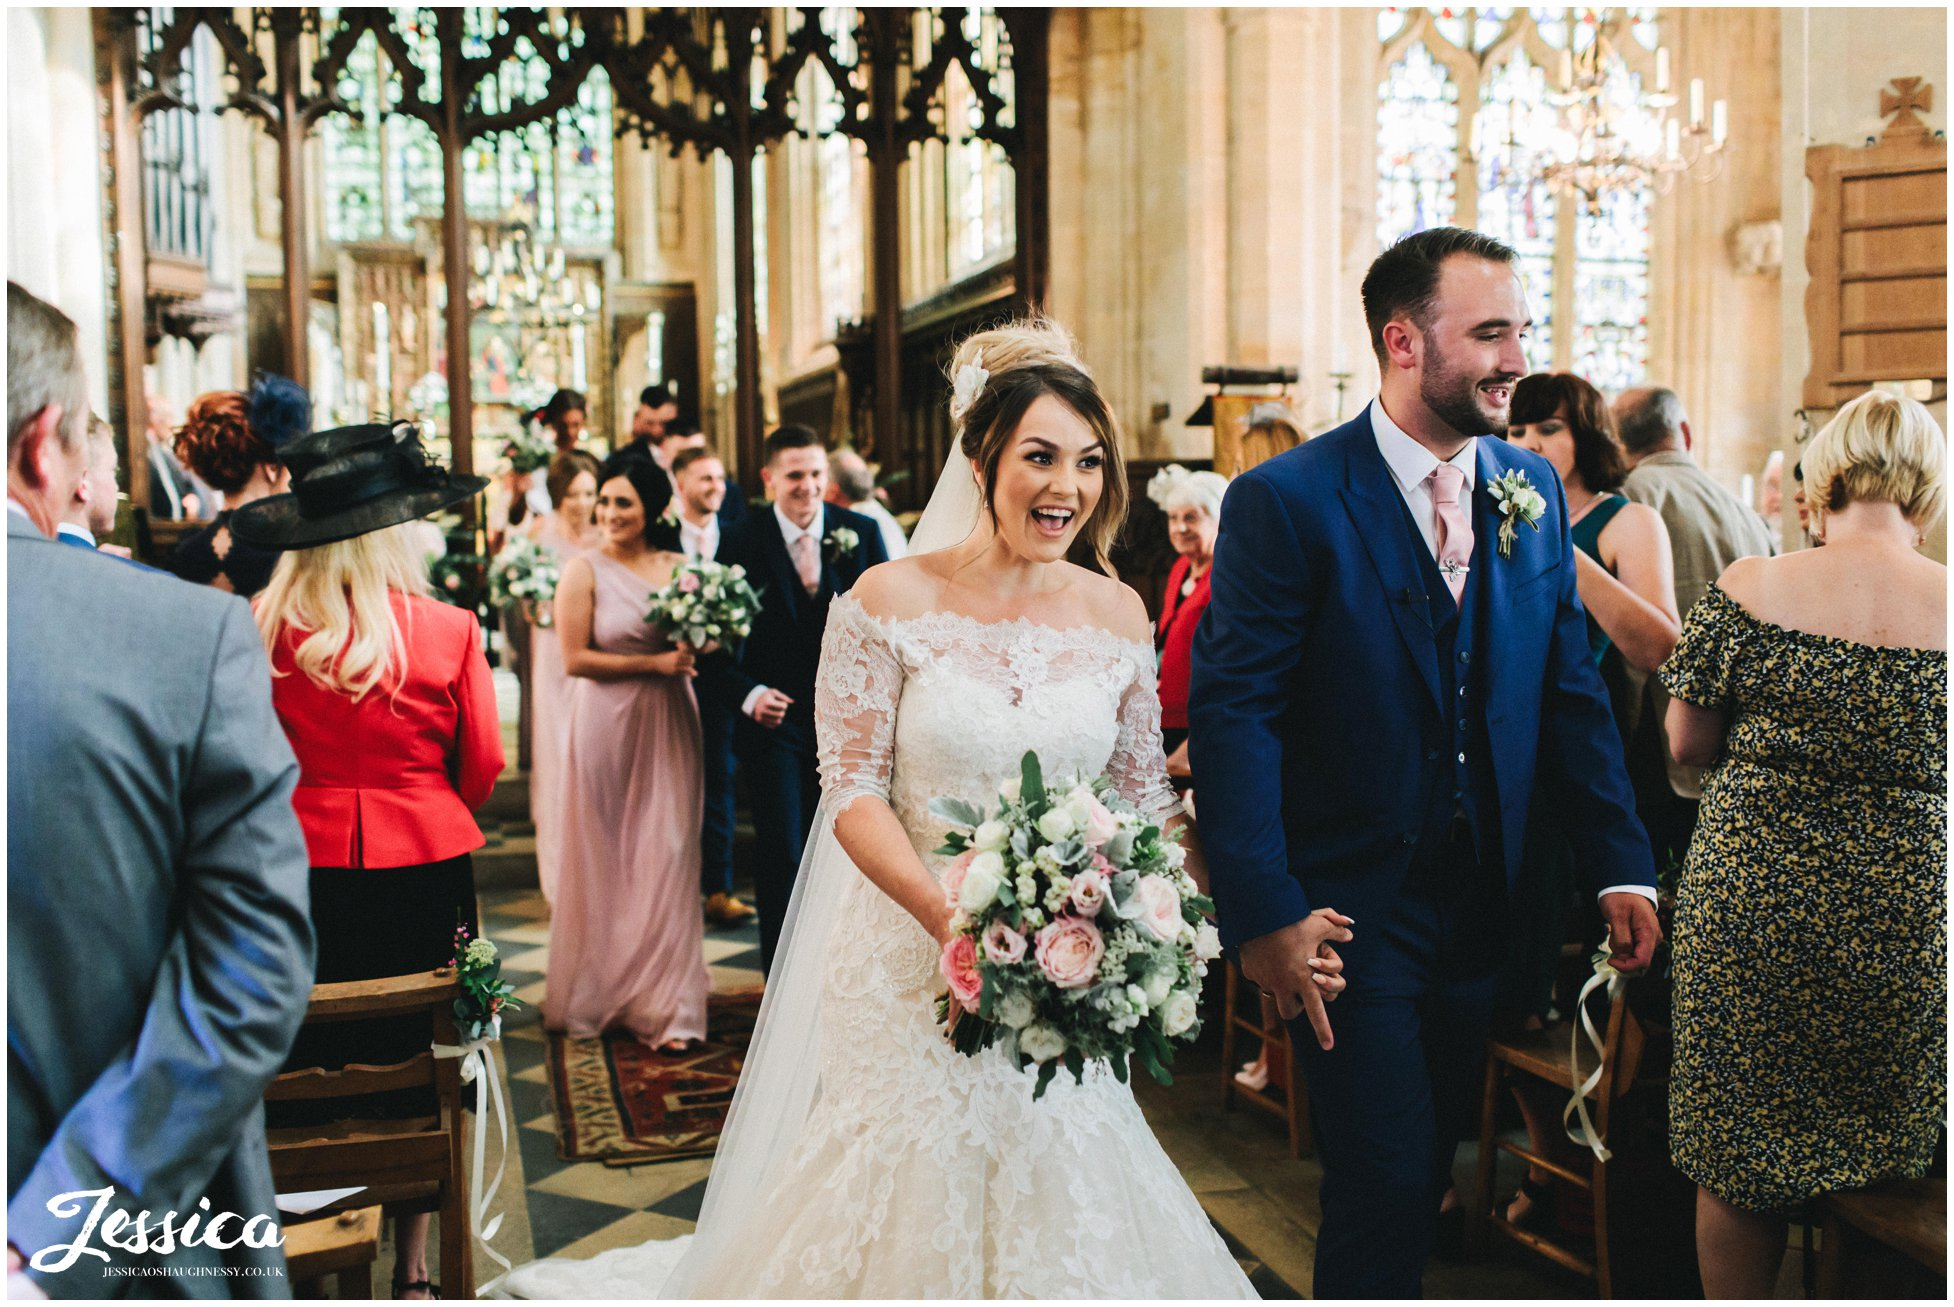 the couple walk back down the aisle as husband and wife